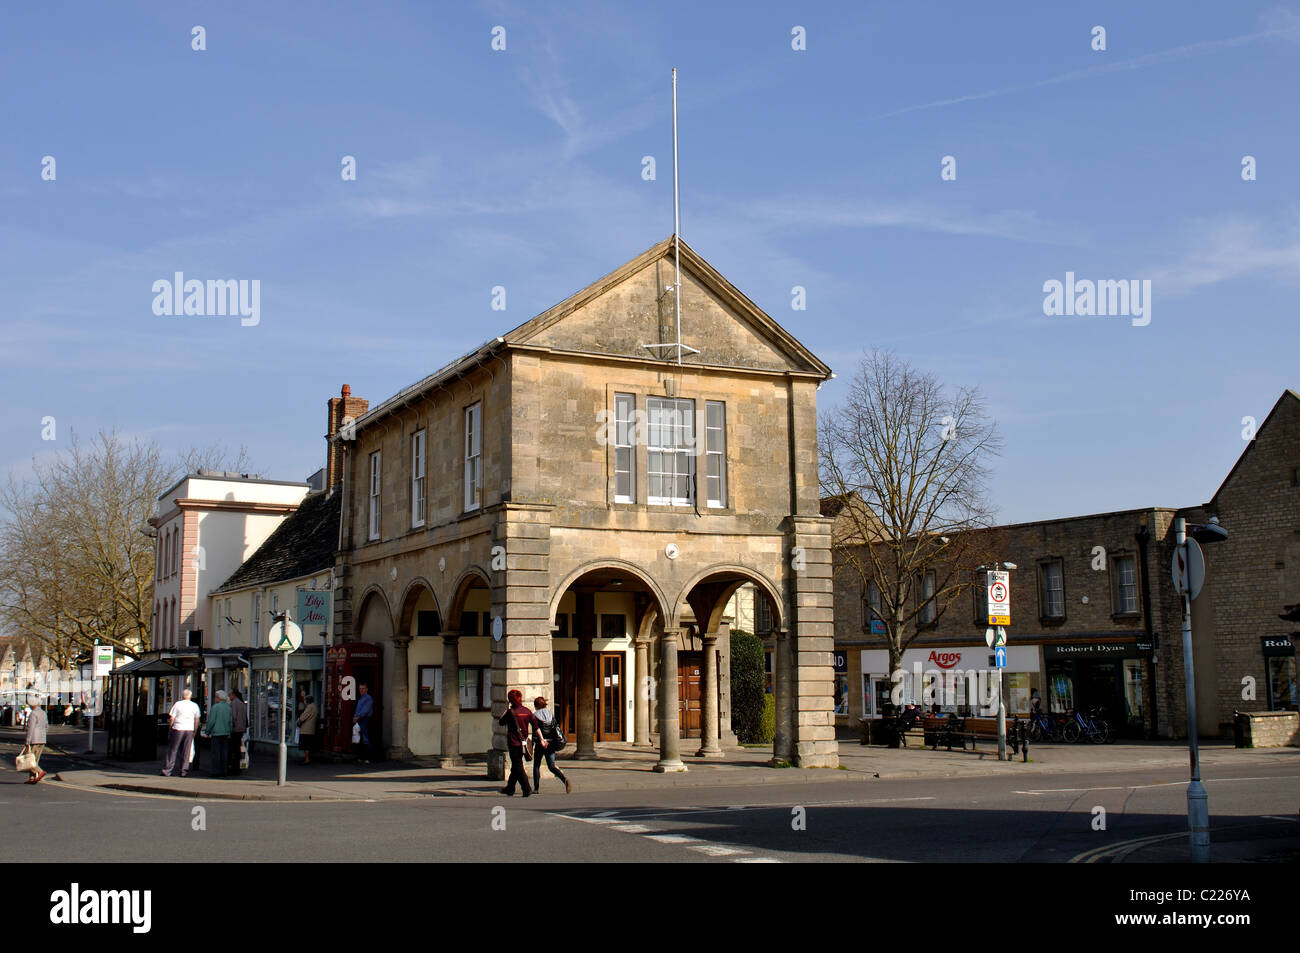 The Town Hall, Witney, Oxfordshire, England, UK - Stock Image